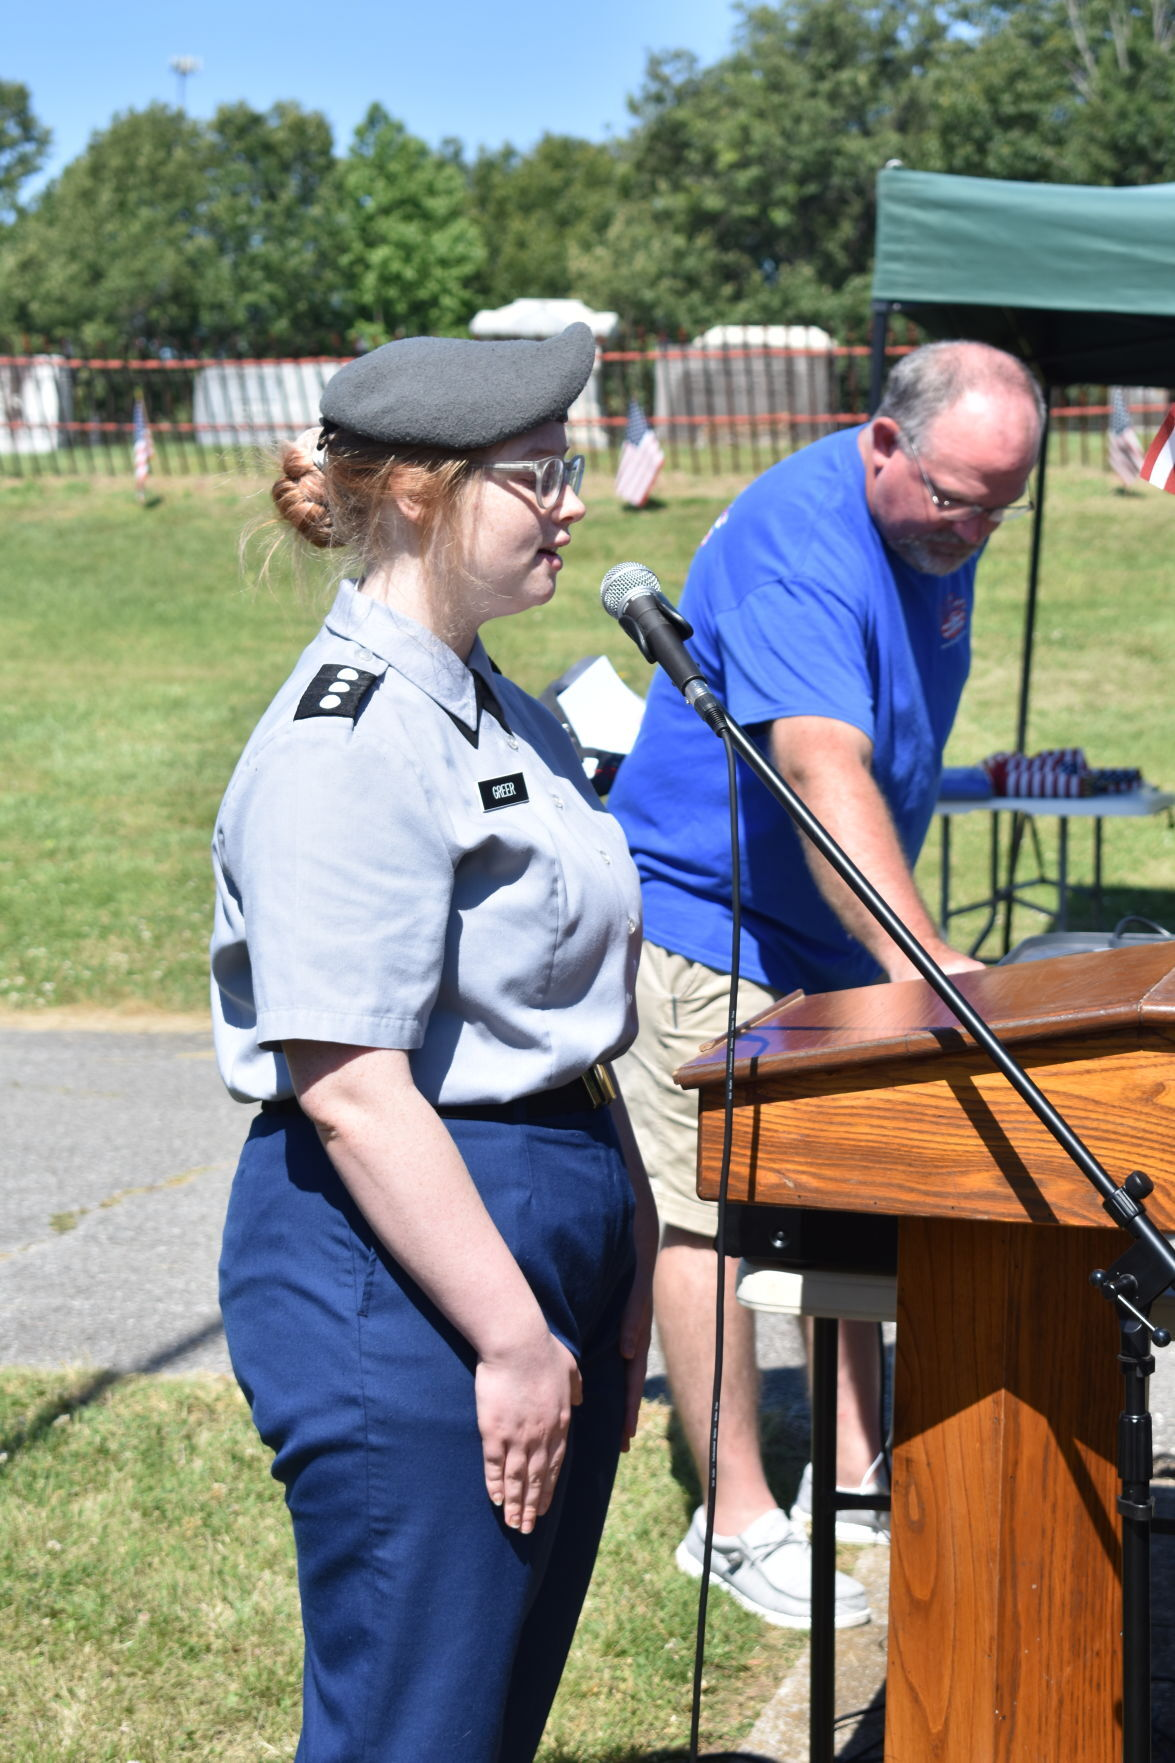 VFW holds annual Memorial Day ceremony